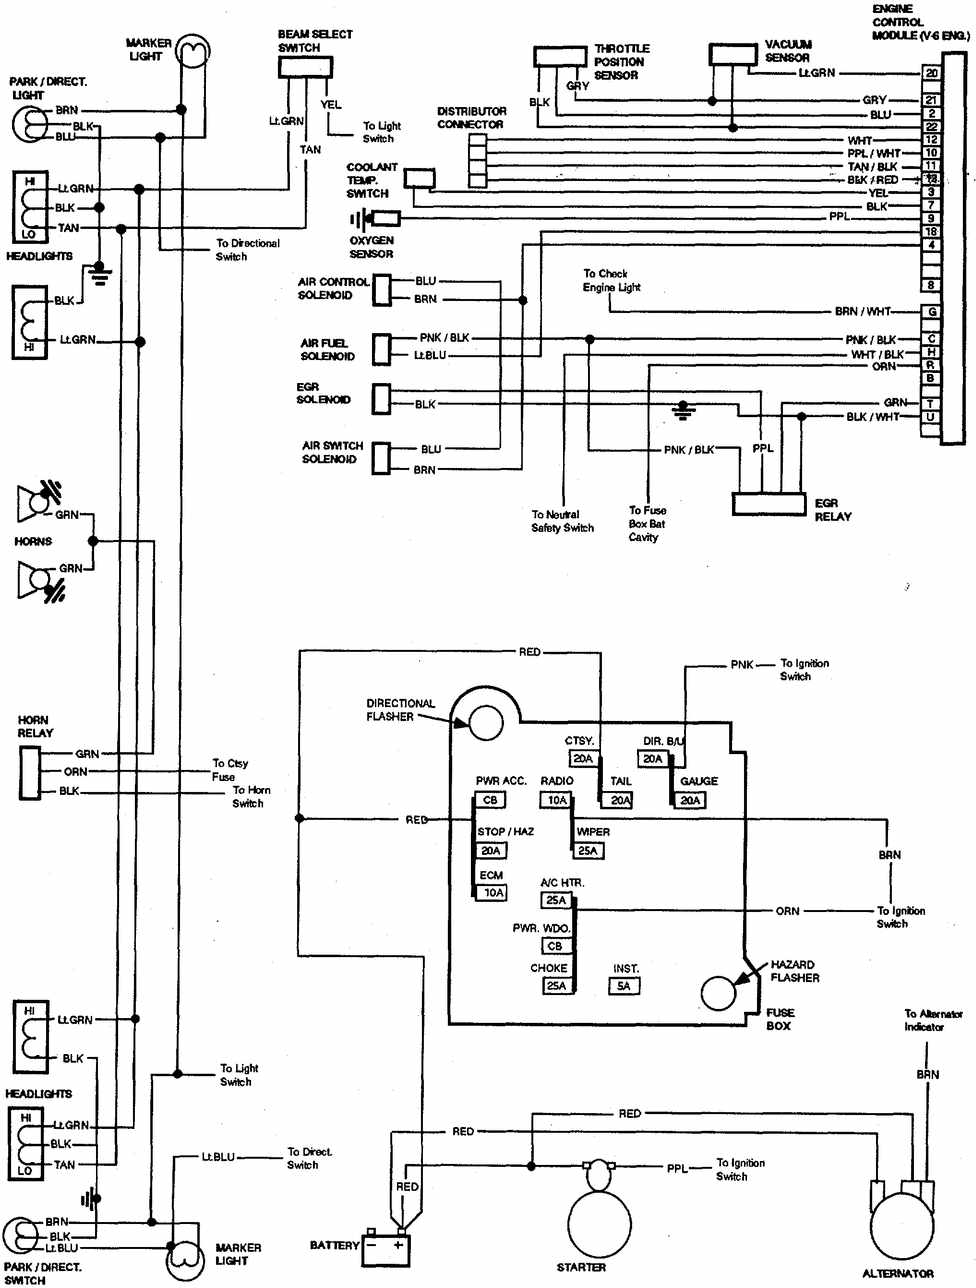 1992 chevy caprice wiring diagram